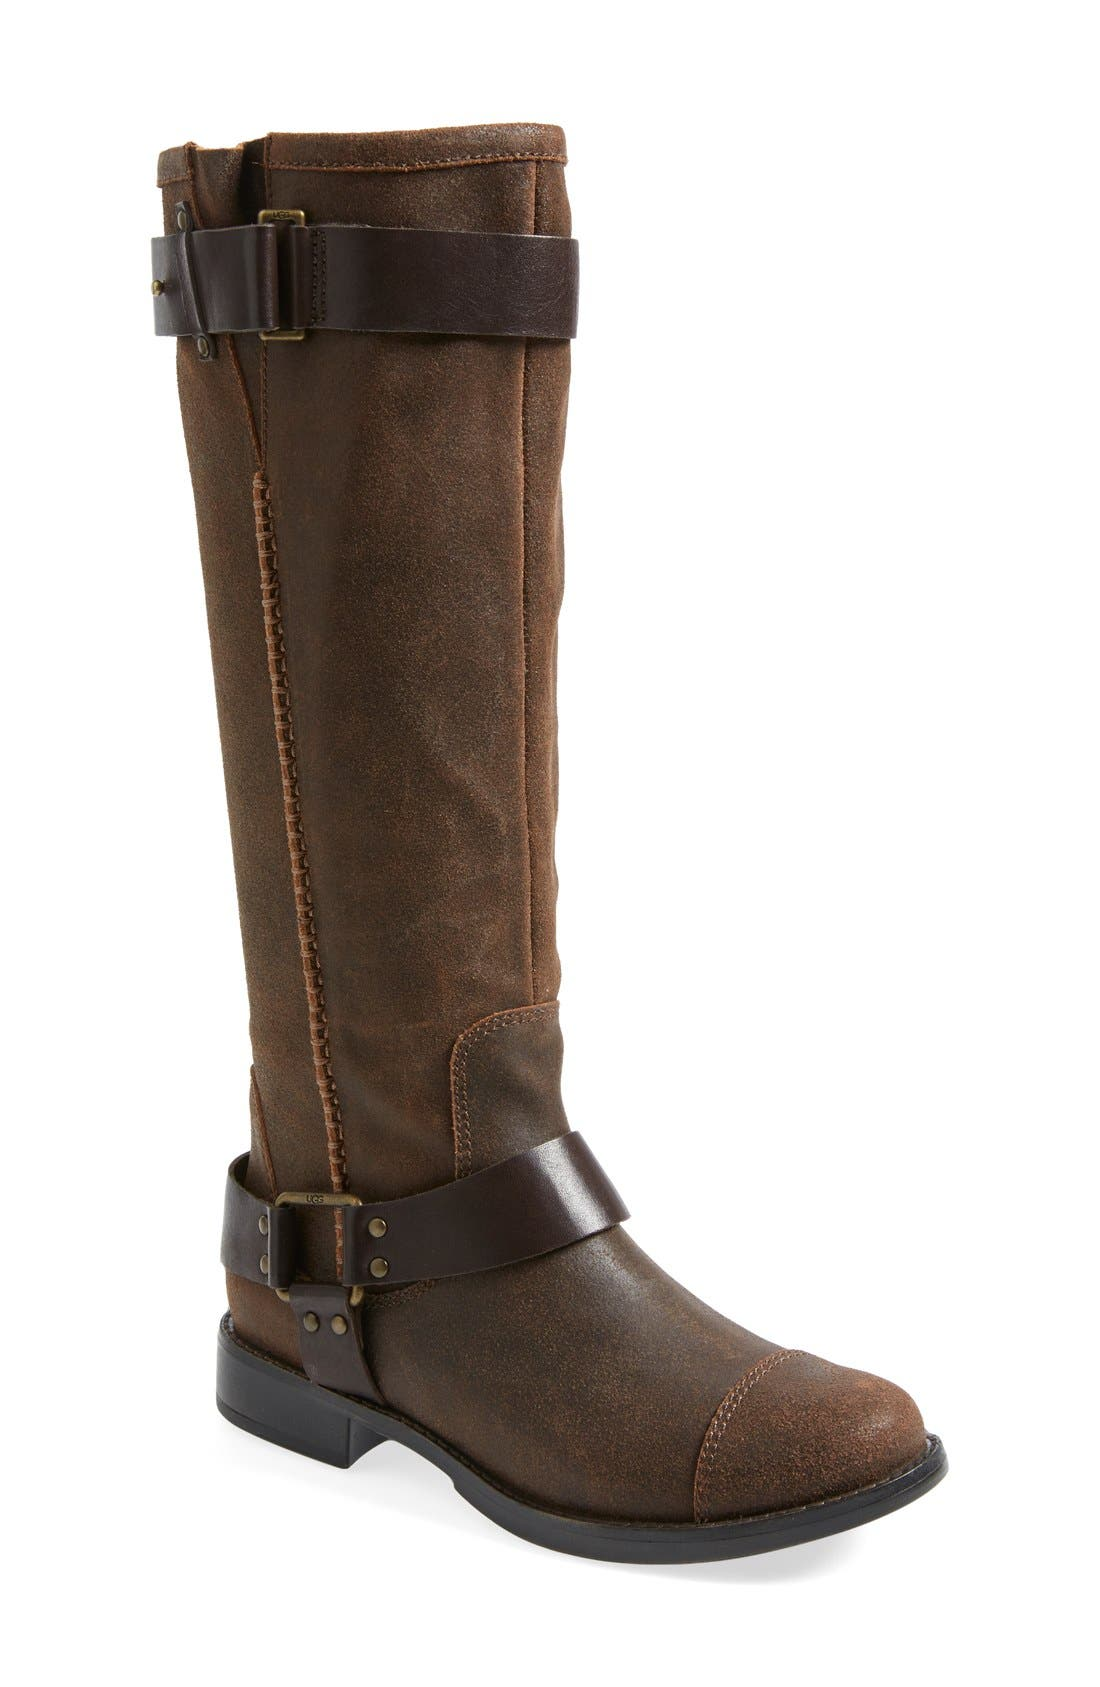 Alternate Image 1 Selected - UGG® Australia 'Dree' Suede Harness Boot (Women)